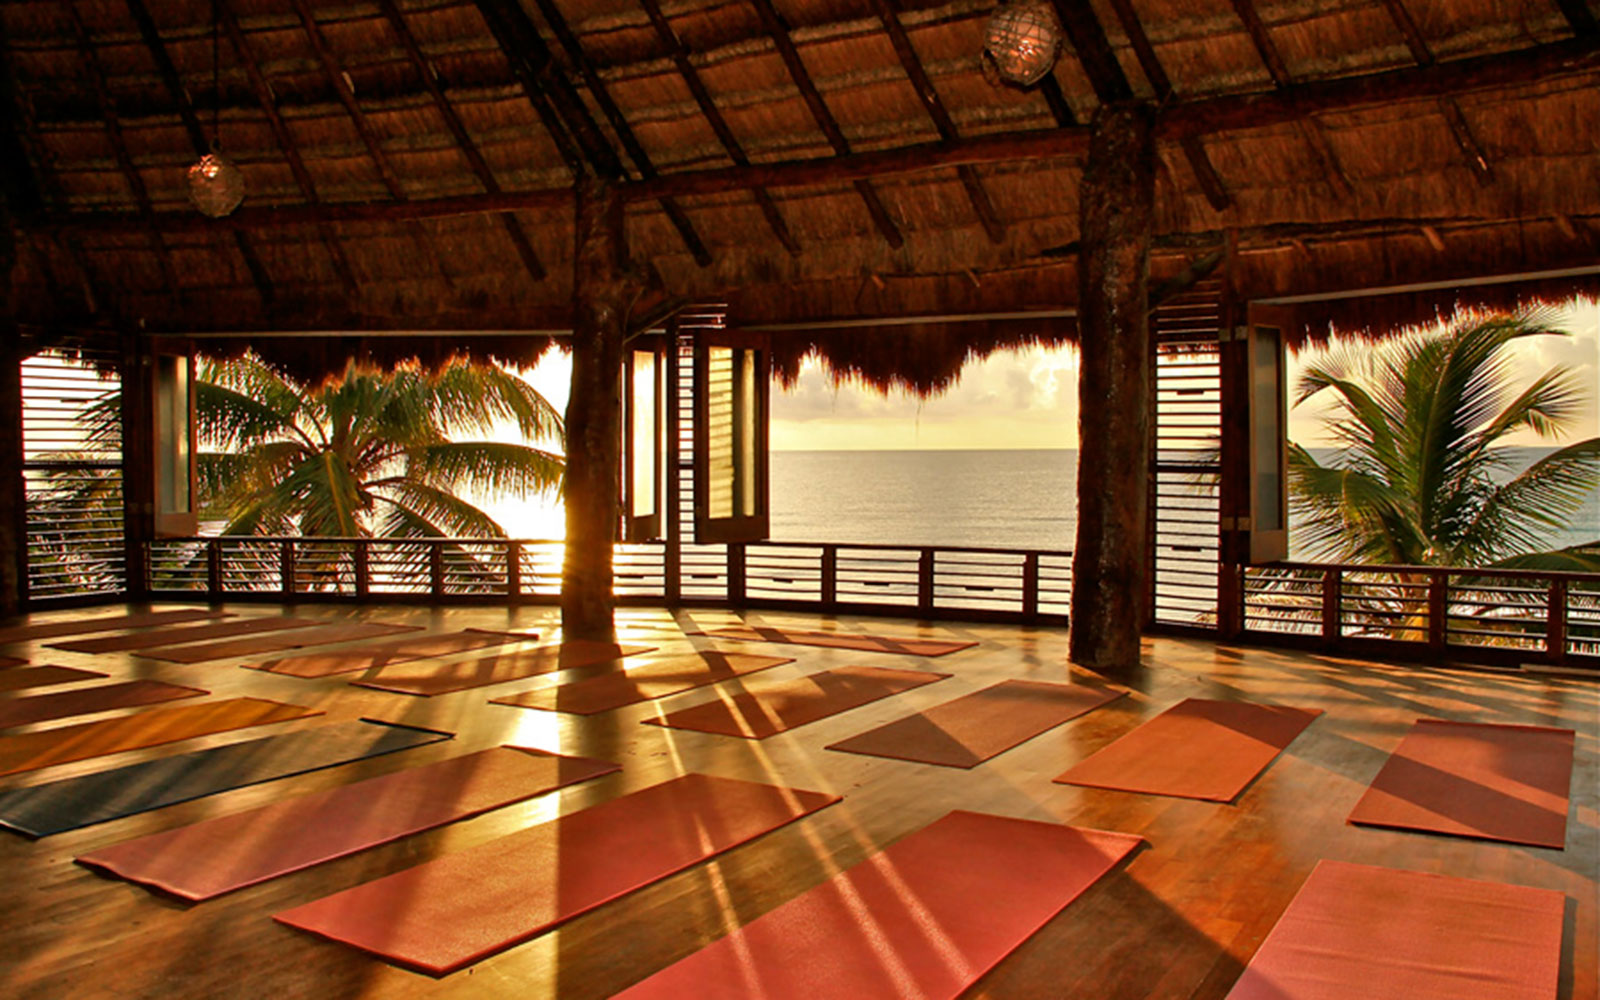 Mexico's Greenest Hotels Offer Guests a Certain 'Om'-biance: Amansala Eco-Chic Resort in Tulum